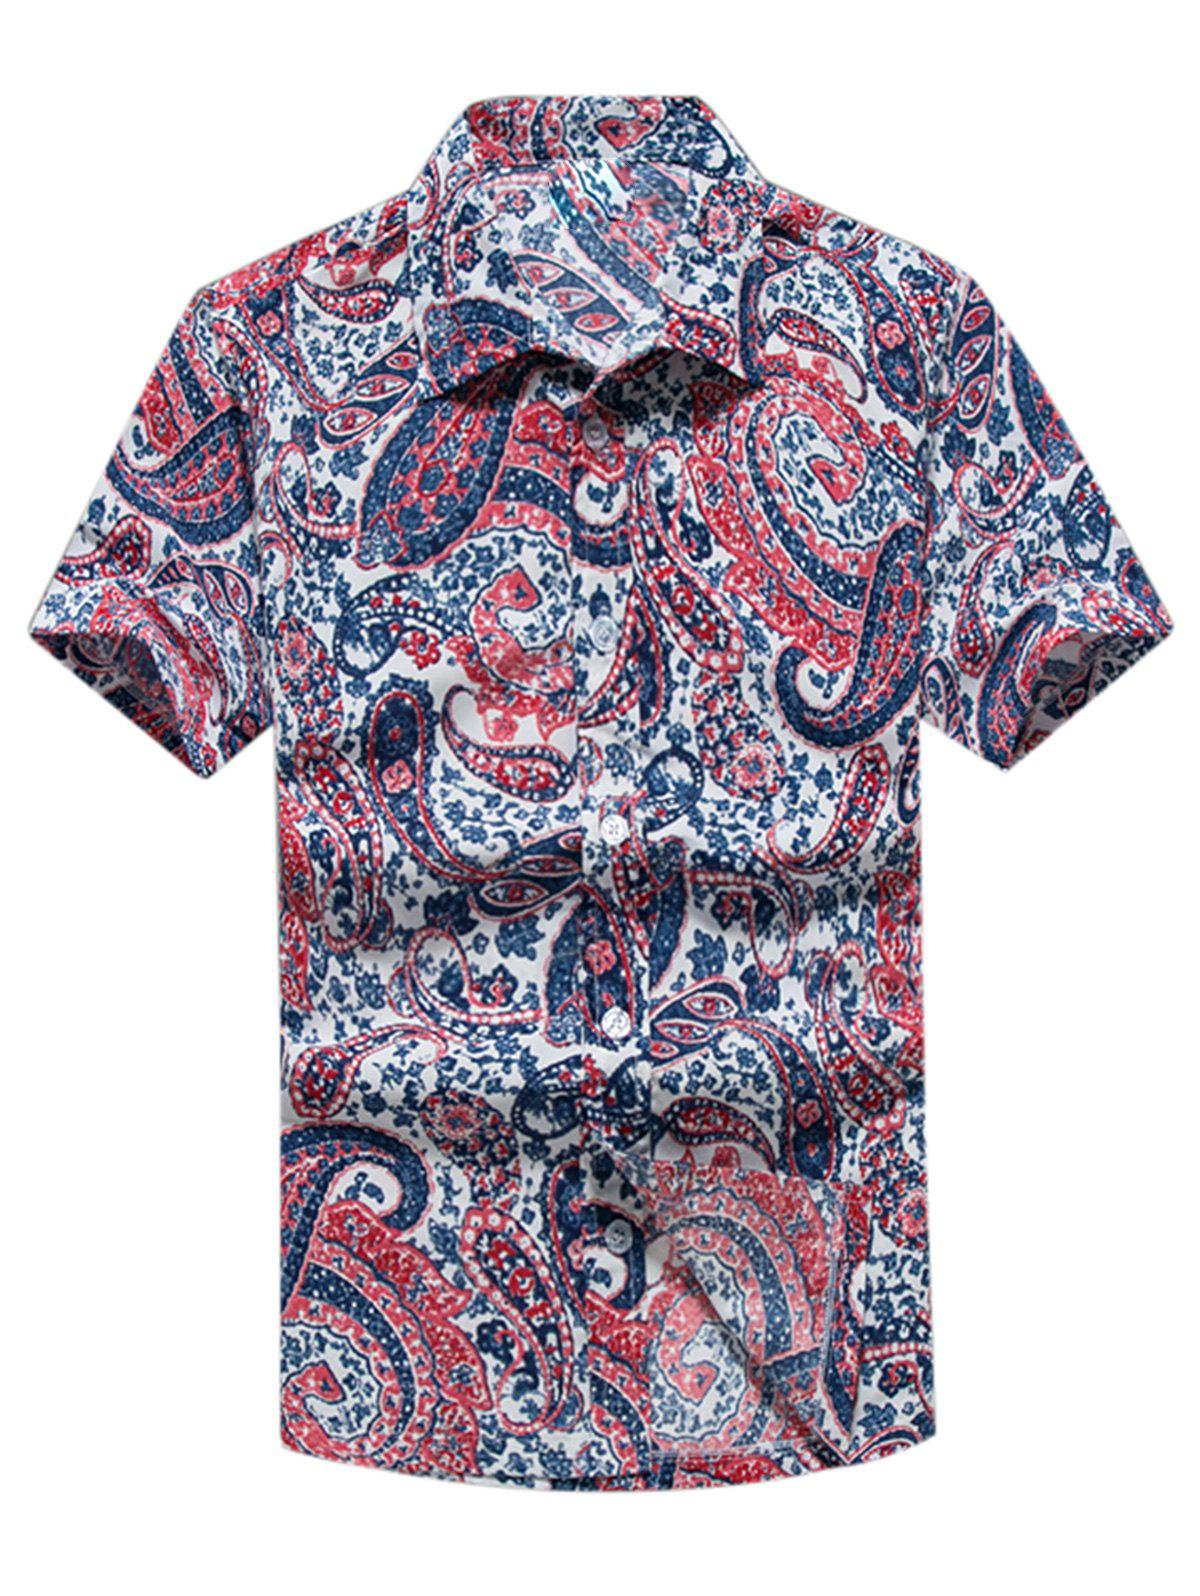 Casual Paisley Print Short Sleeve Shirt - RED 3XL